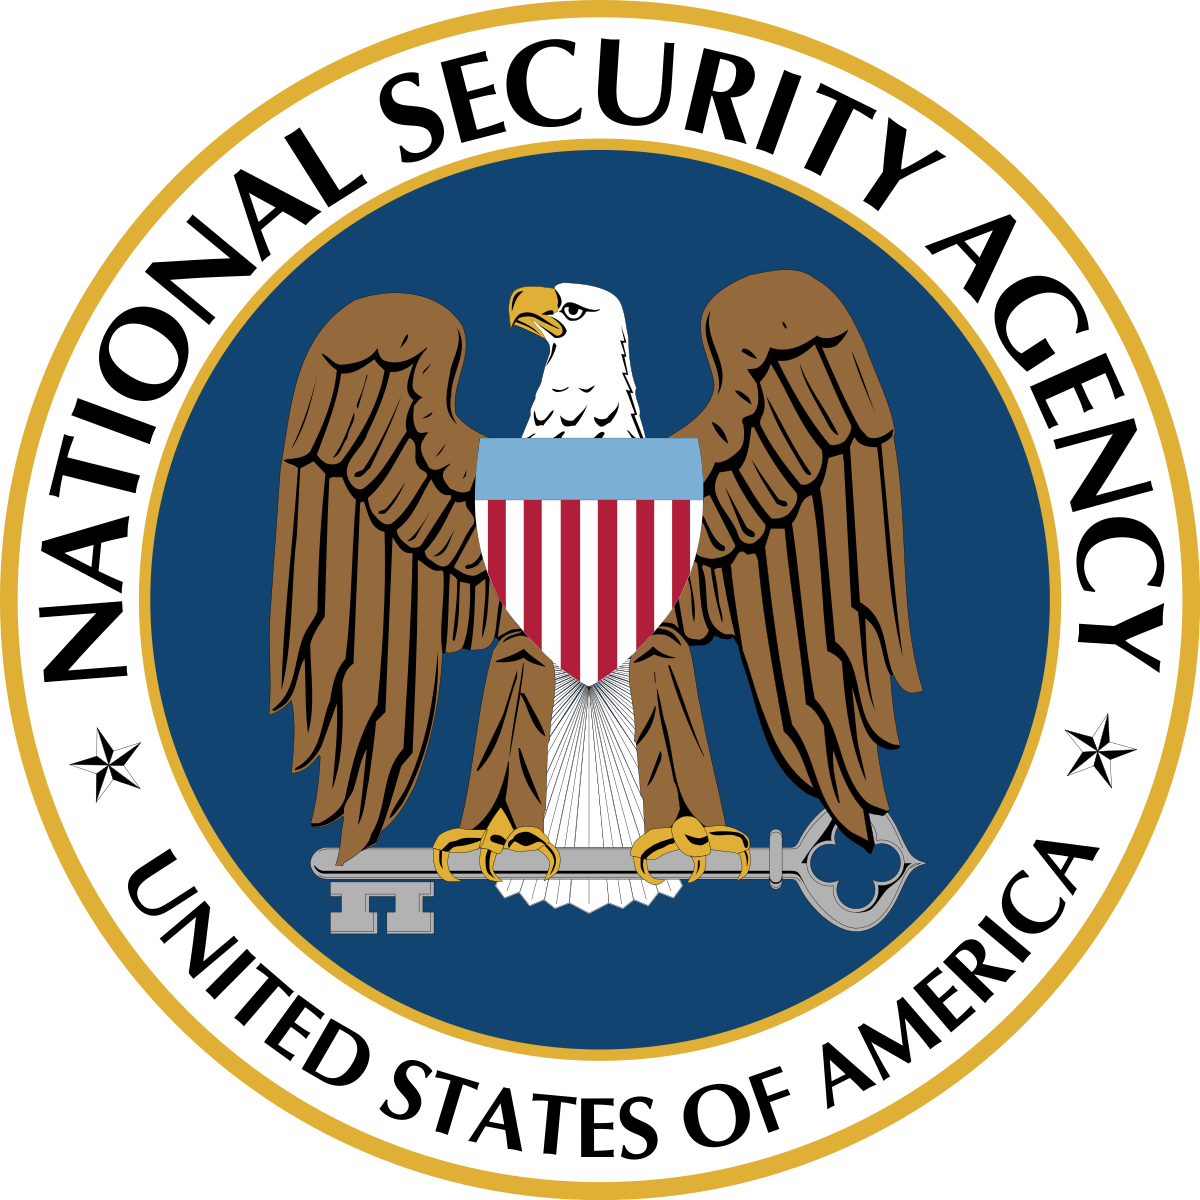 nsa1.png